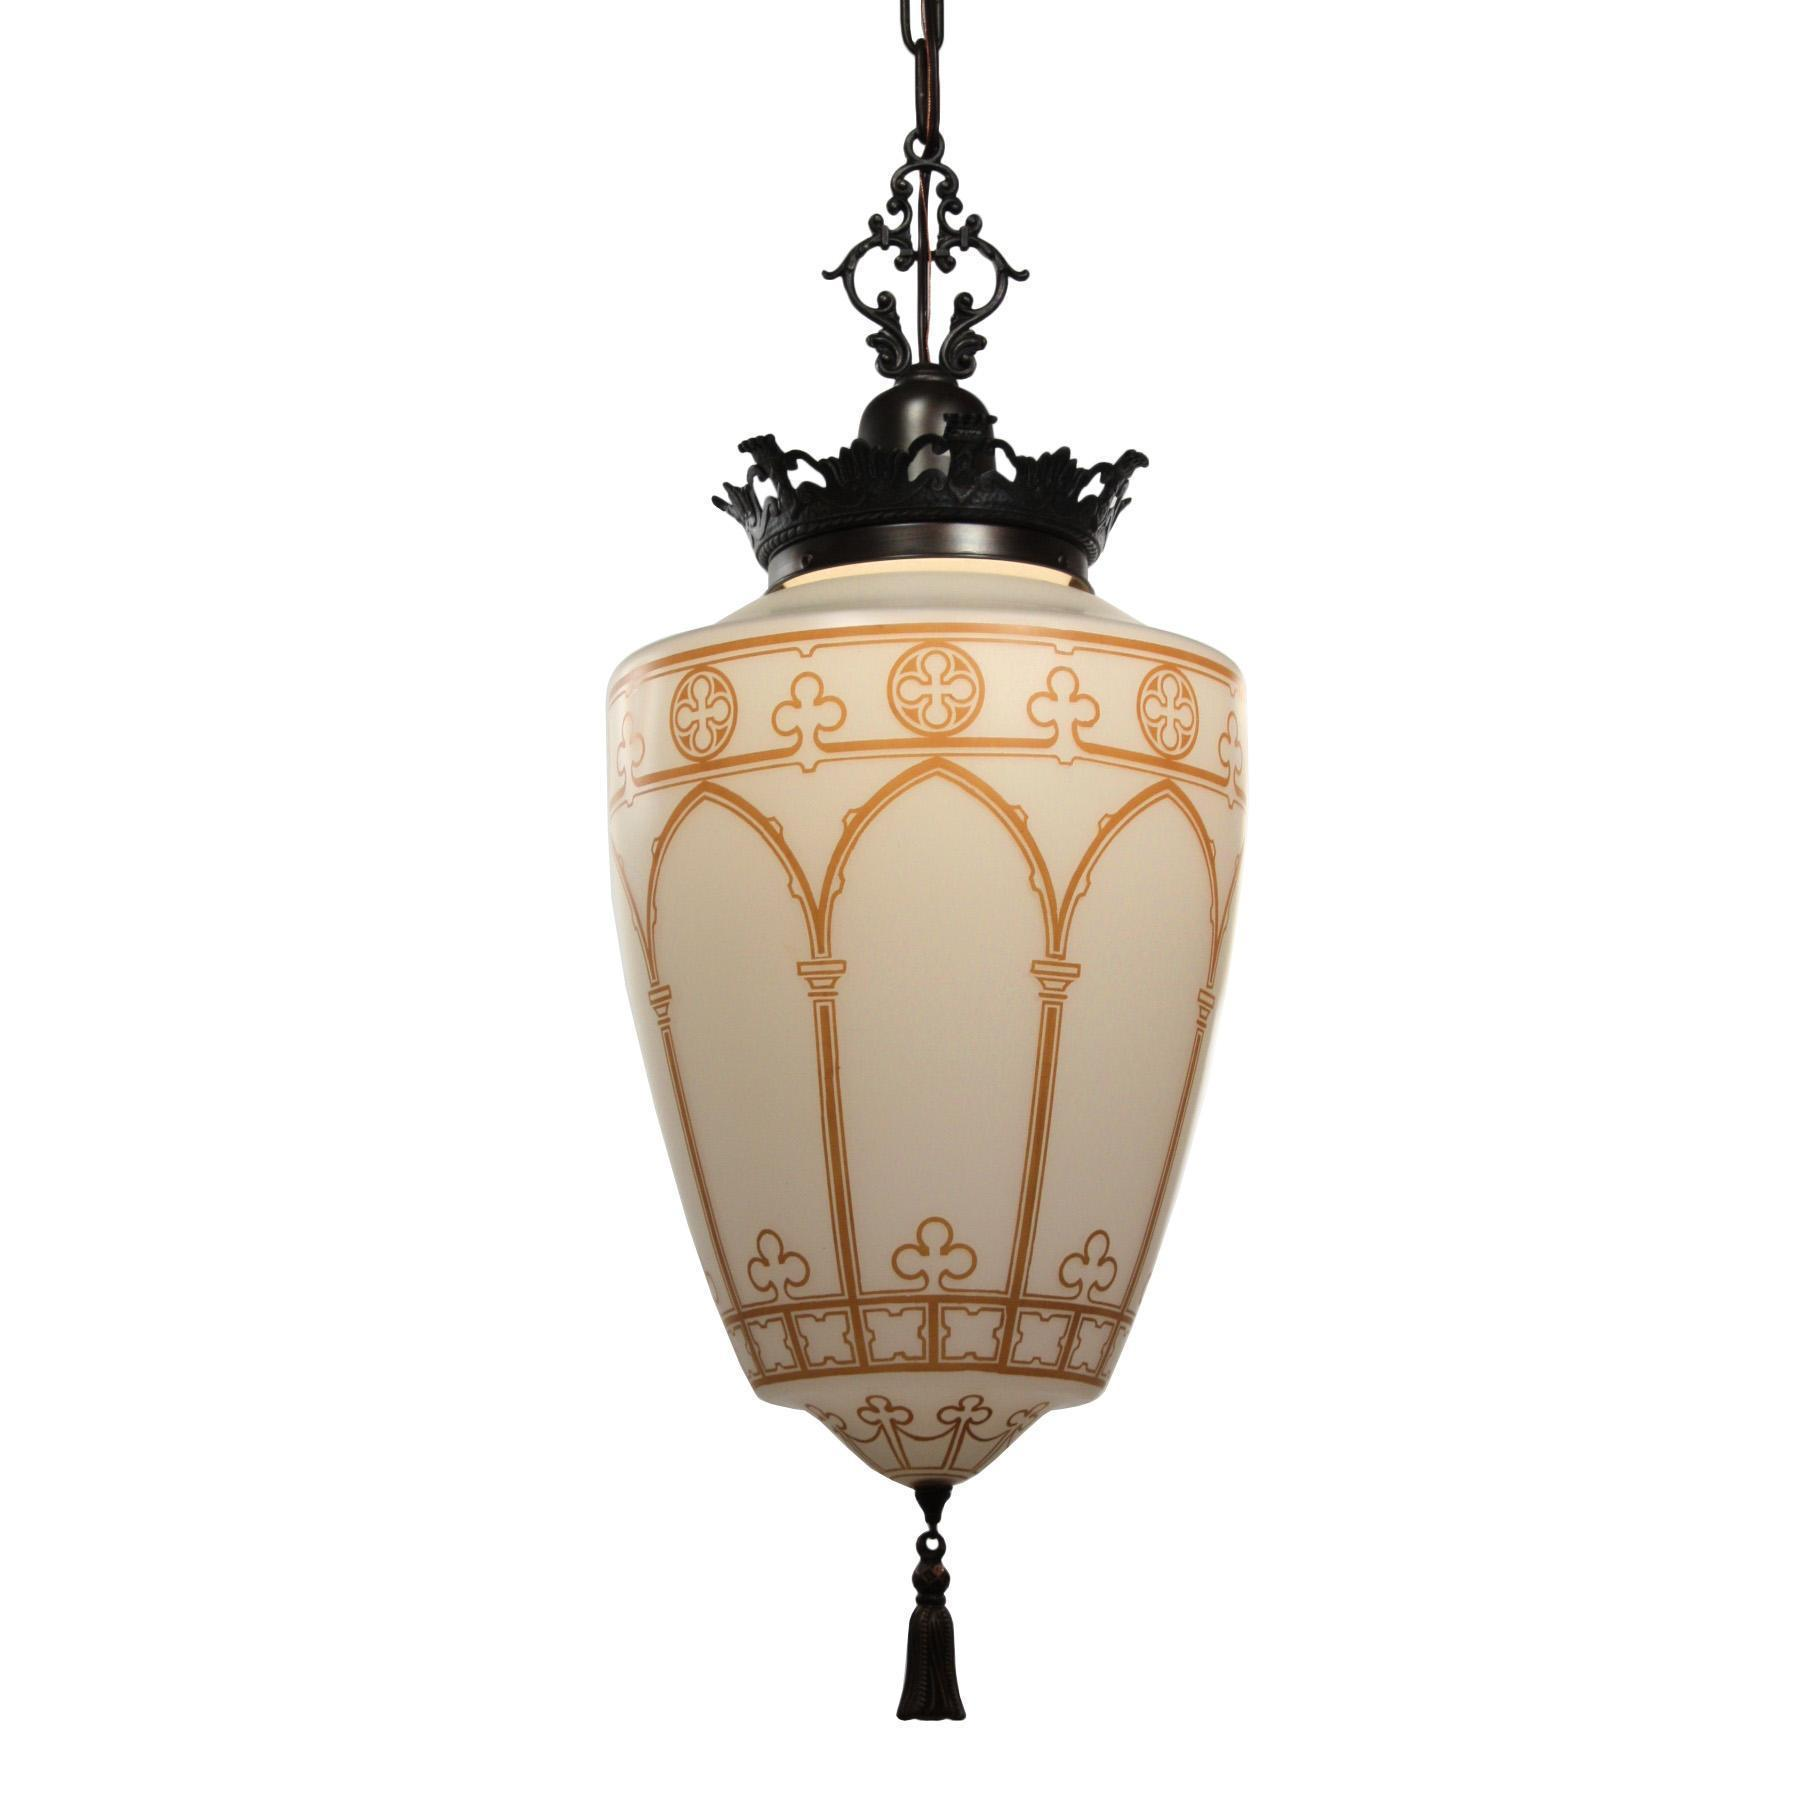 Magnificent Antique Gothic Revival Pendant Light, Early 1900s